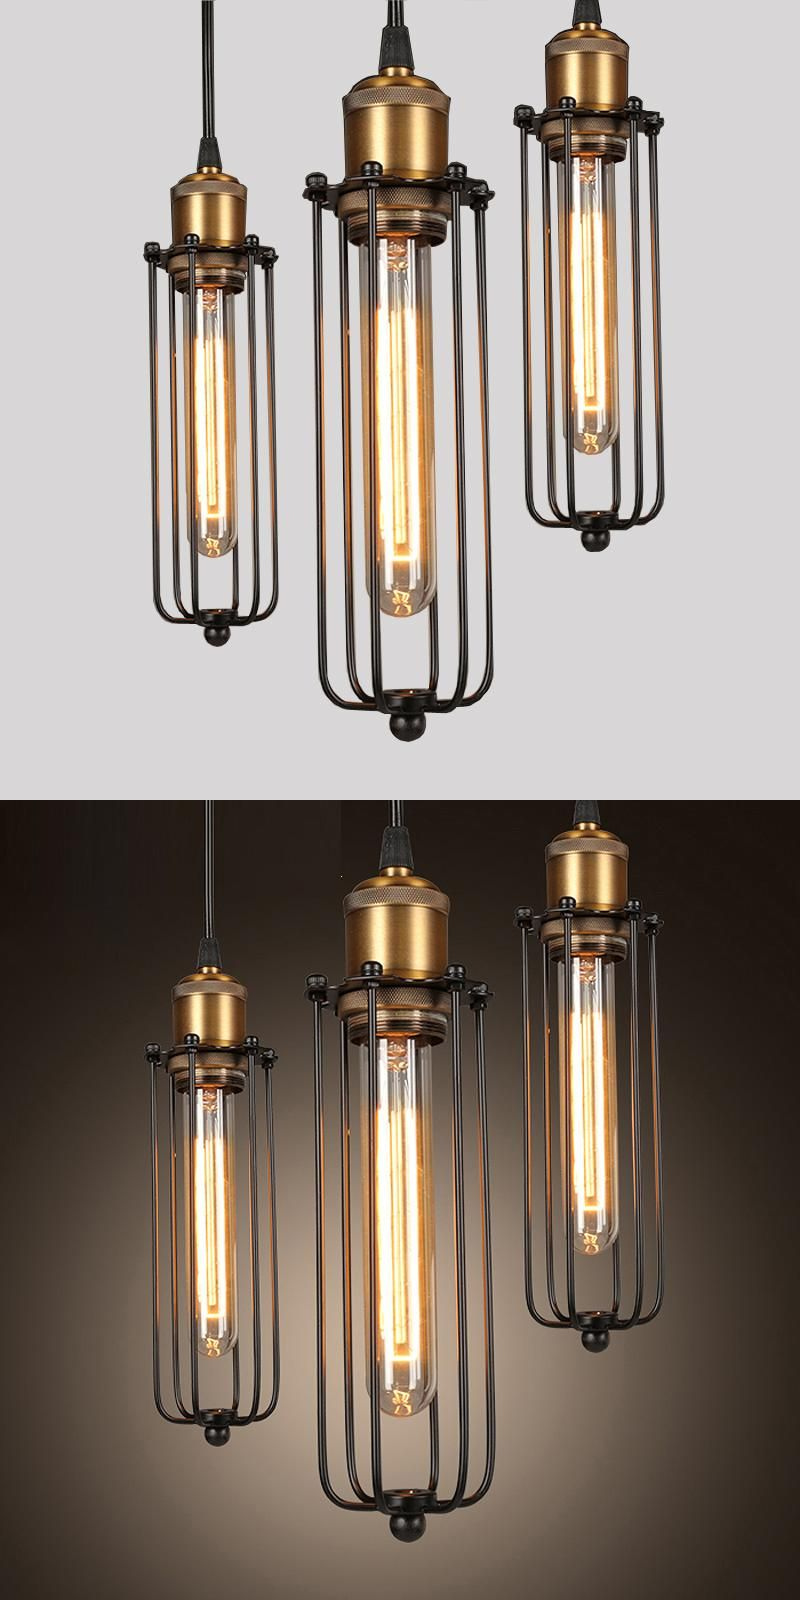 Visit to buy retro rh industrial pendant lamps for warehousebar a